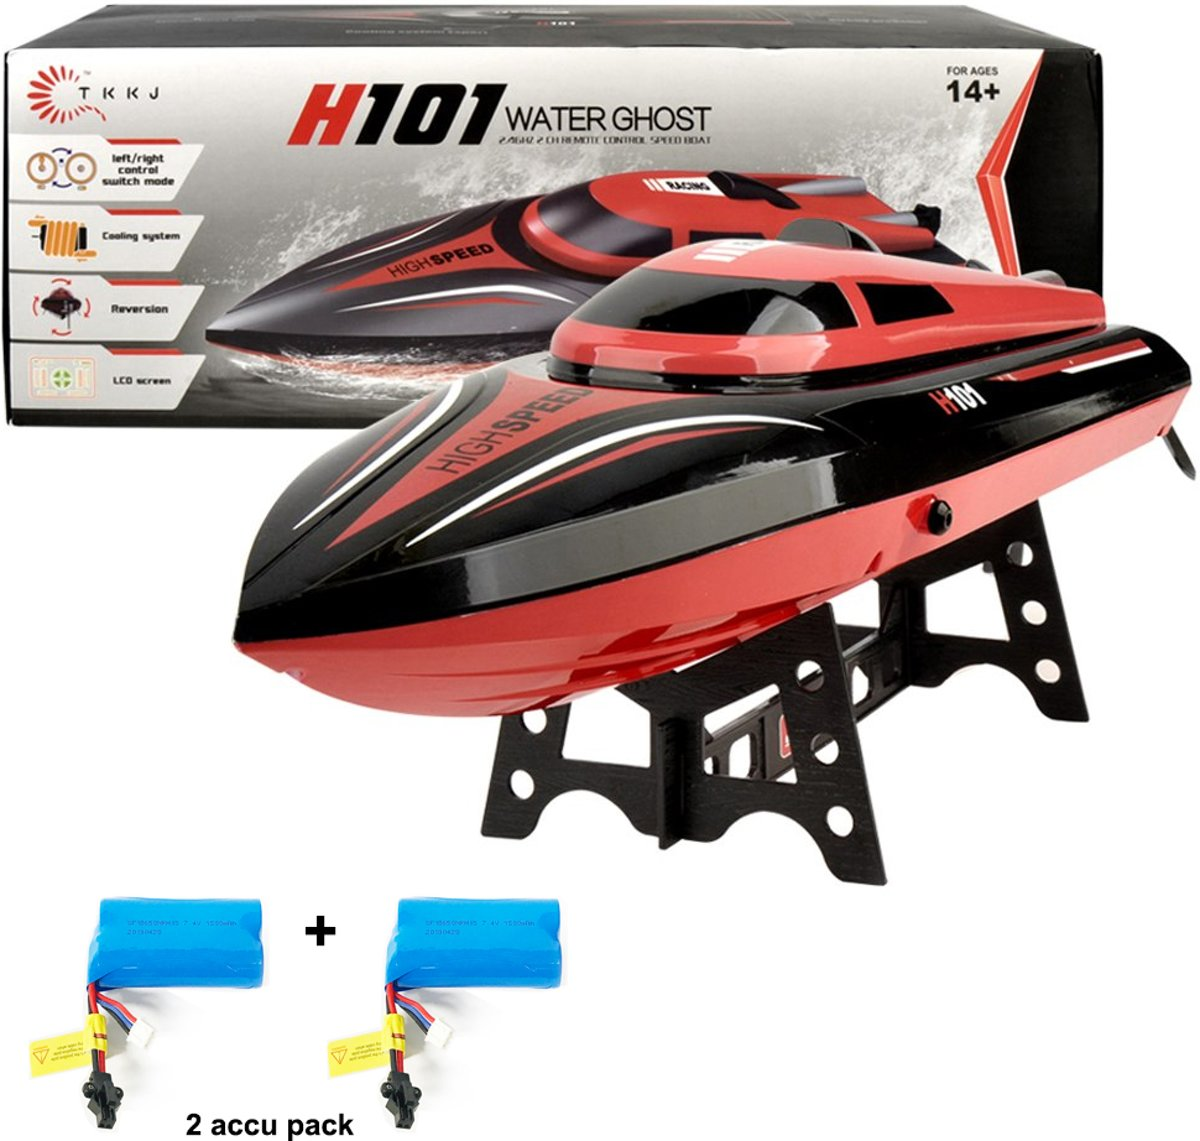 RC Race Boot H101- Water Ghost 2.4GHZ -  h SPEED Boat 25KM + Extra Accu